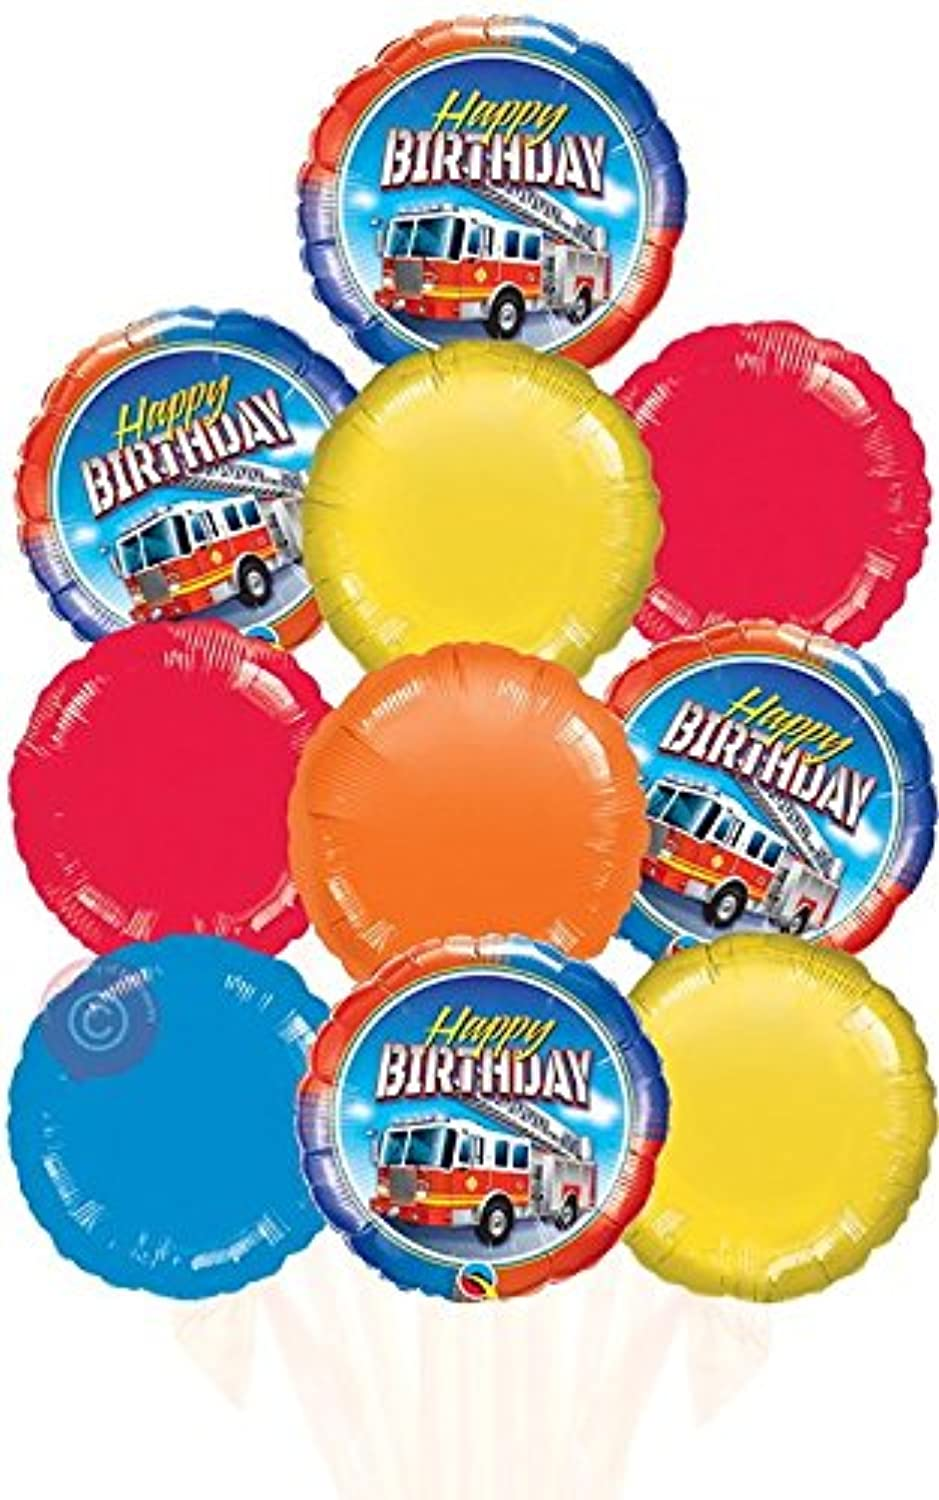 Happy Birthday Fire Truck  Inflated Birthday Helium Balloon Delivered in a Box  Biggest Bouquet  10 Balloons  Bloonaway